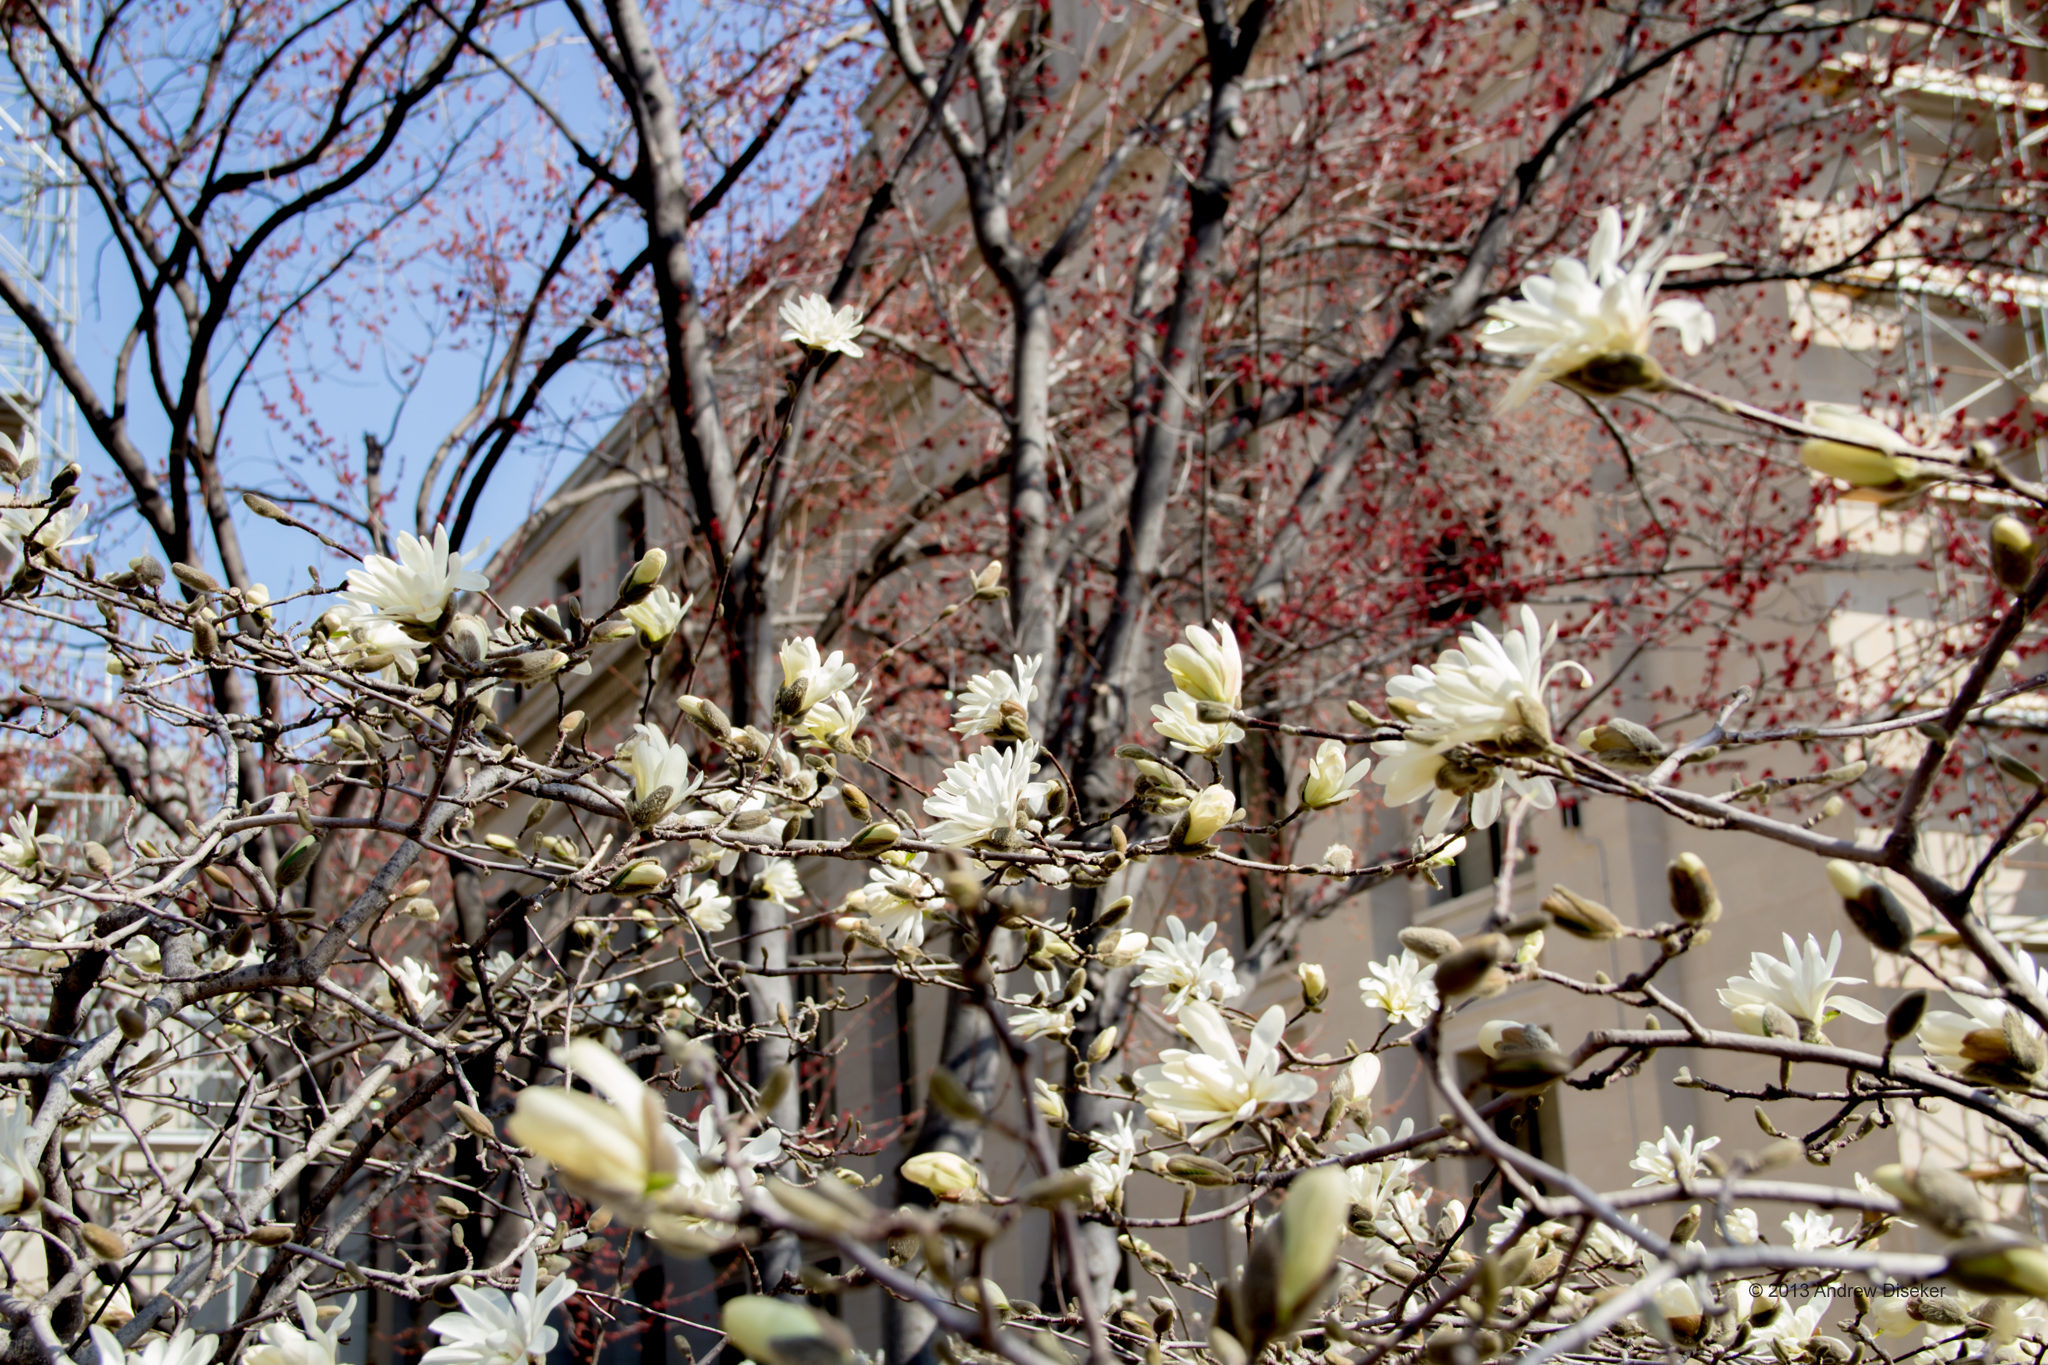 White flowers and red tree buds